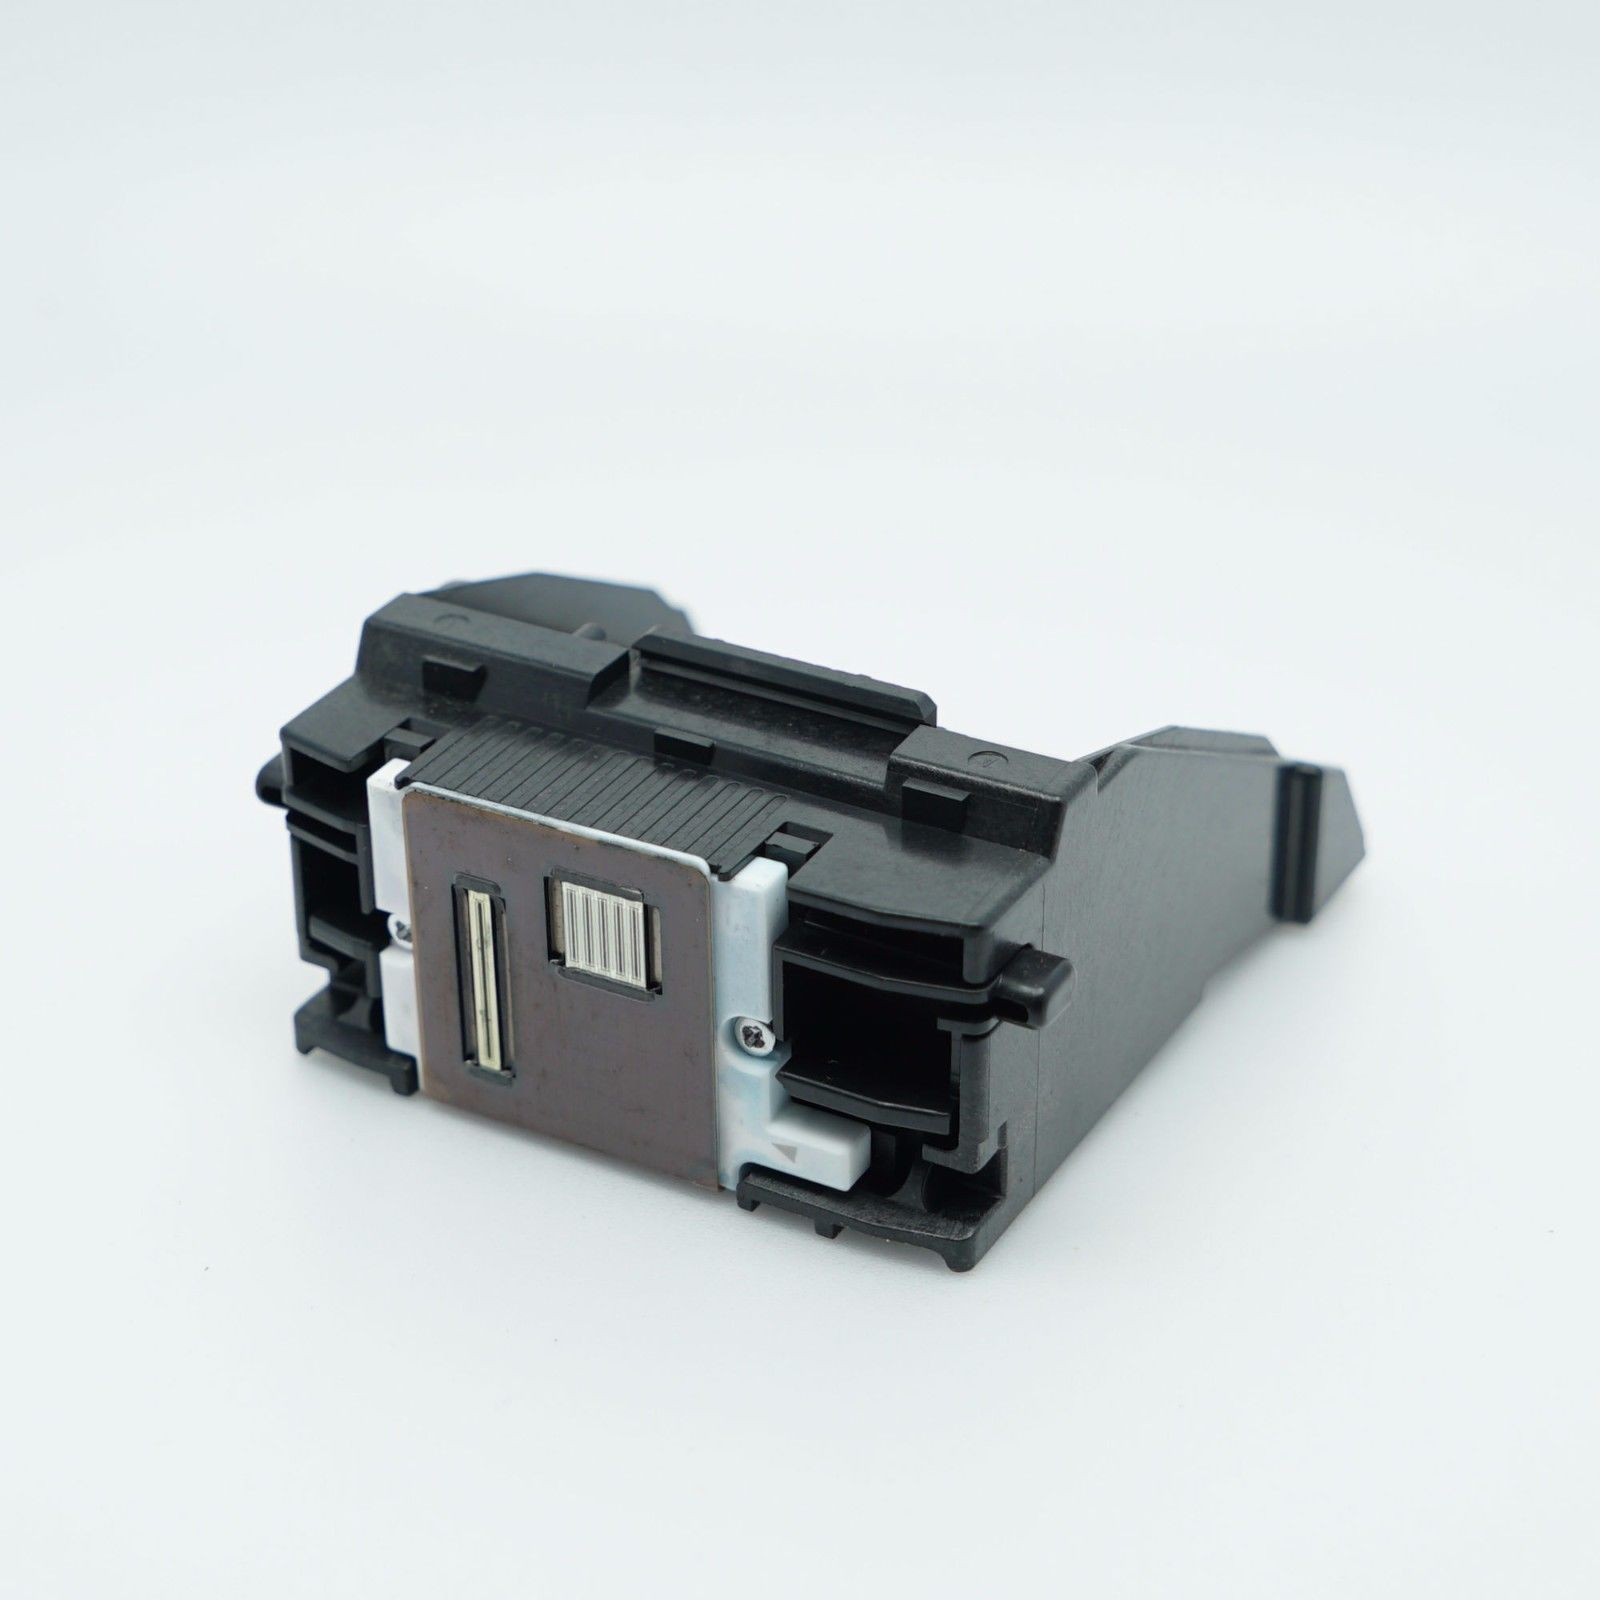 QY6-0042 print head FOR CANON i560 i850 iP3000 MP700 MP710 iX4000 iX5000 iP3100 print head qy6 0042 printhead for canon i560 i850 ip3000 mp730 ix5000